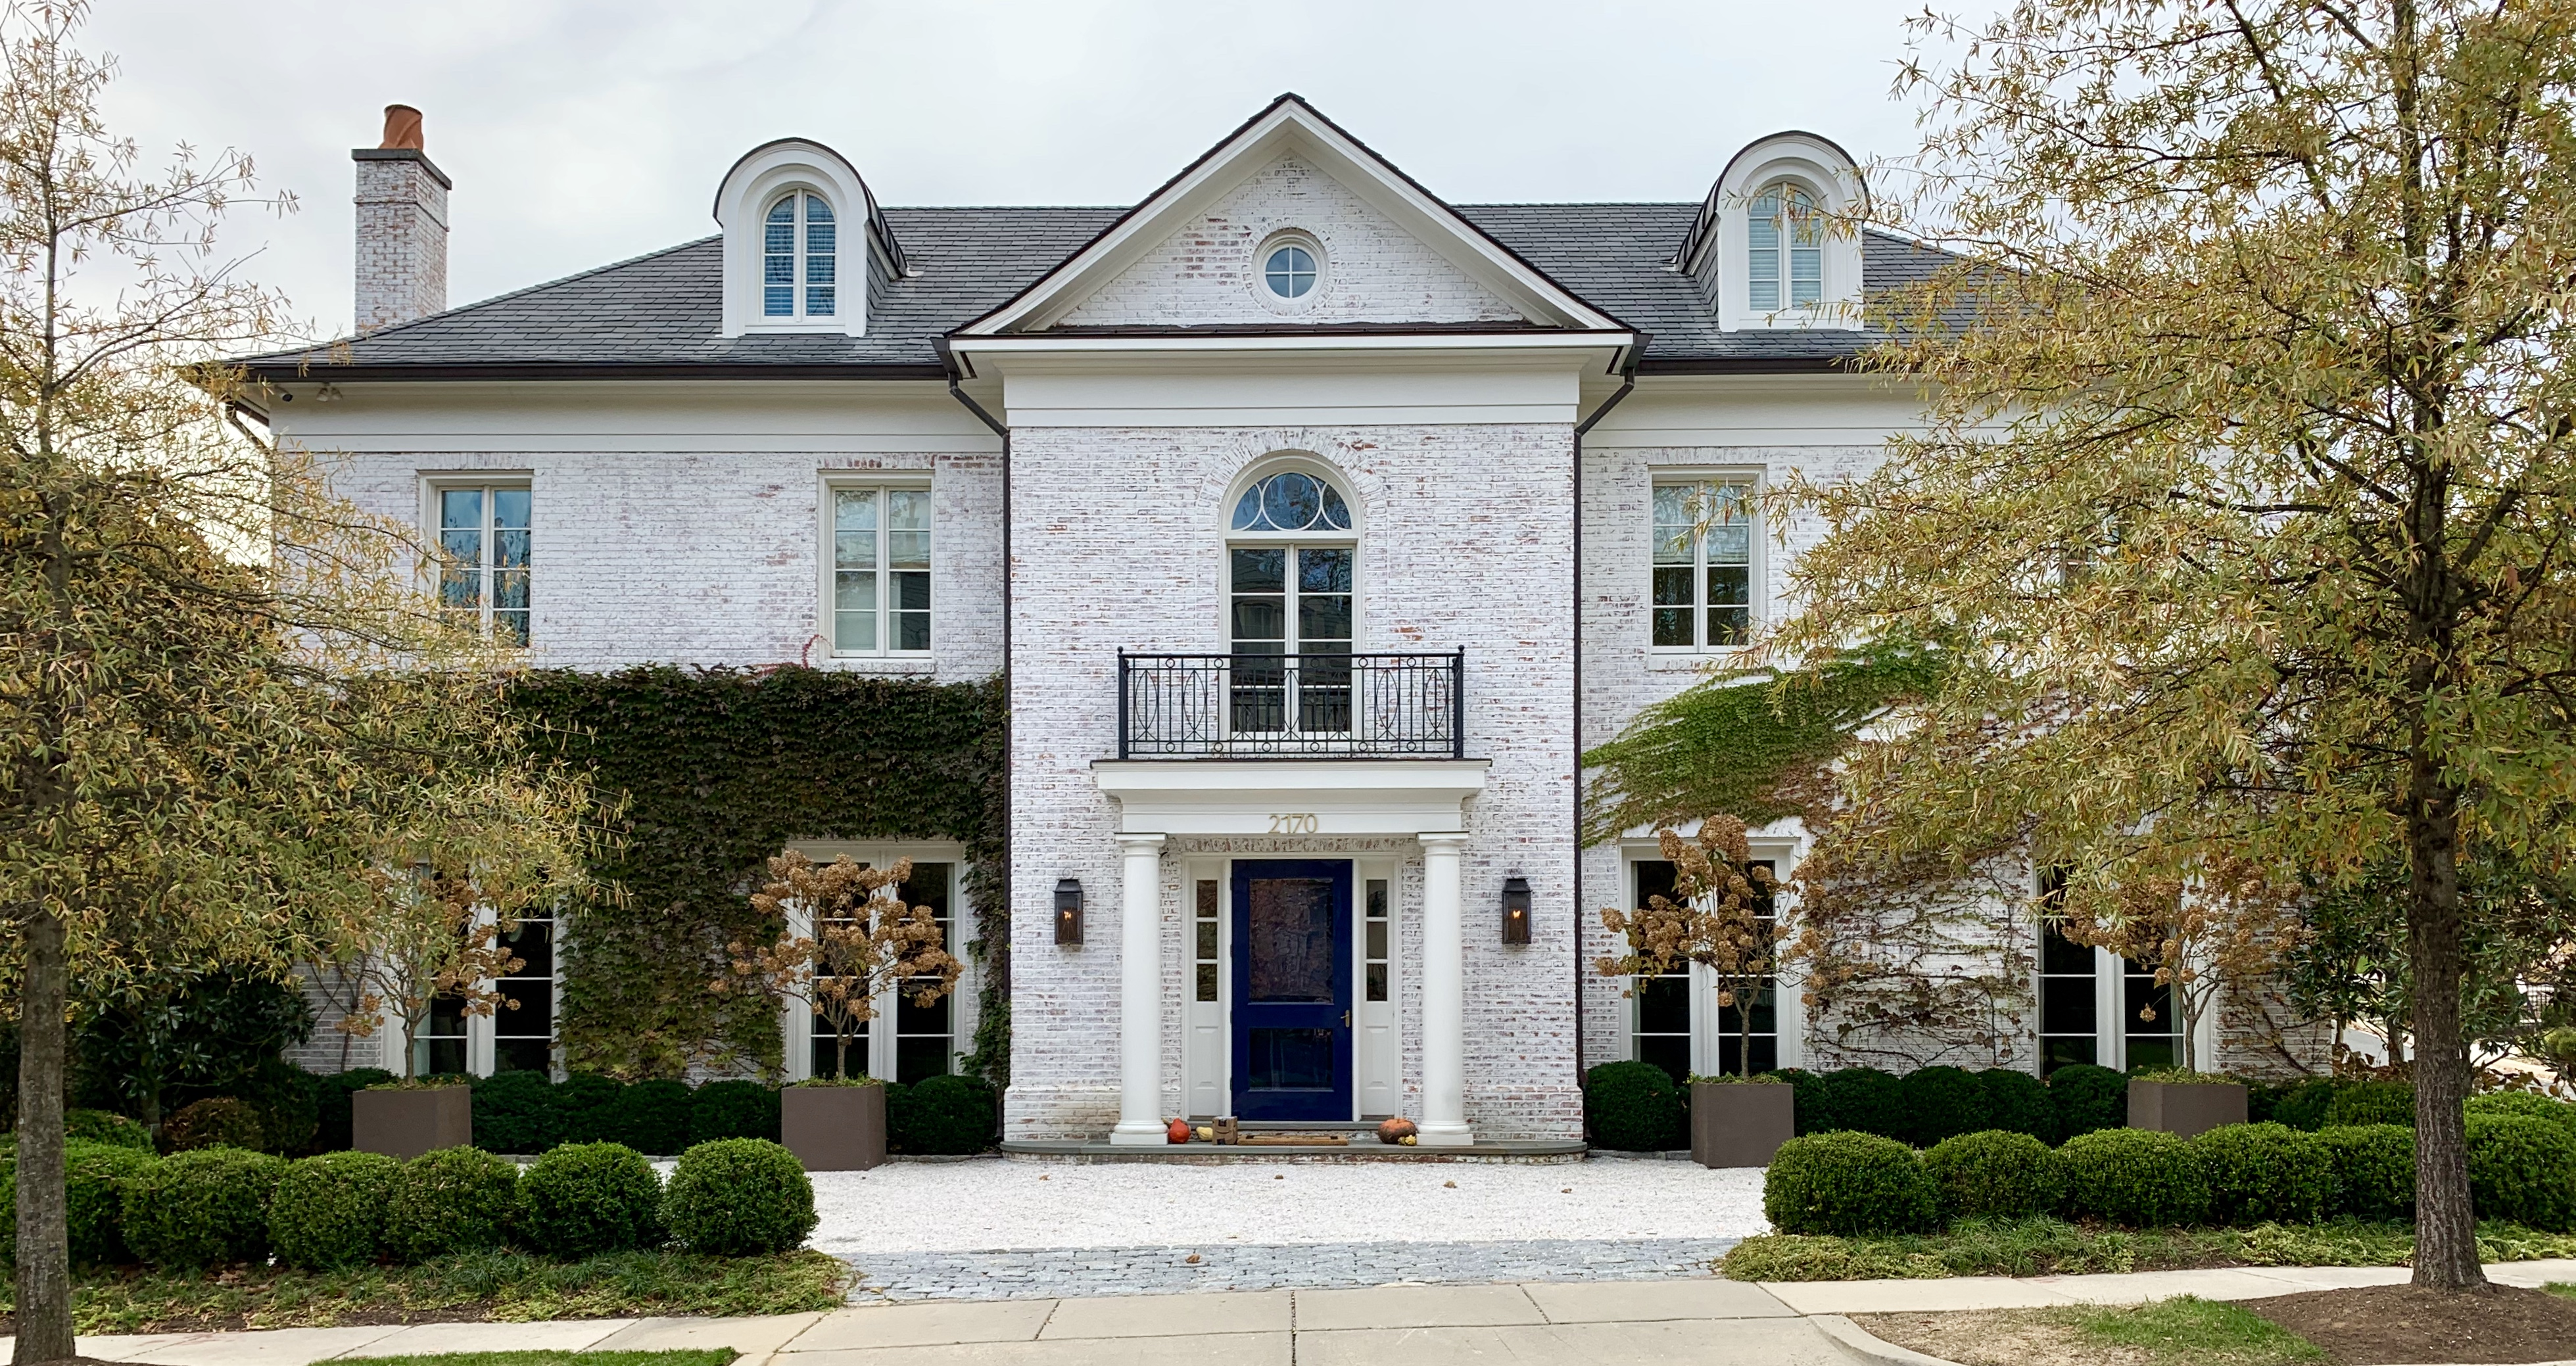 Foxhall Crescent, DC Luxury Real Estate and Homes For Sale. Dunmore Ln NW